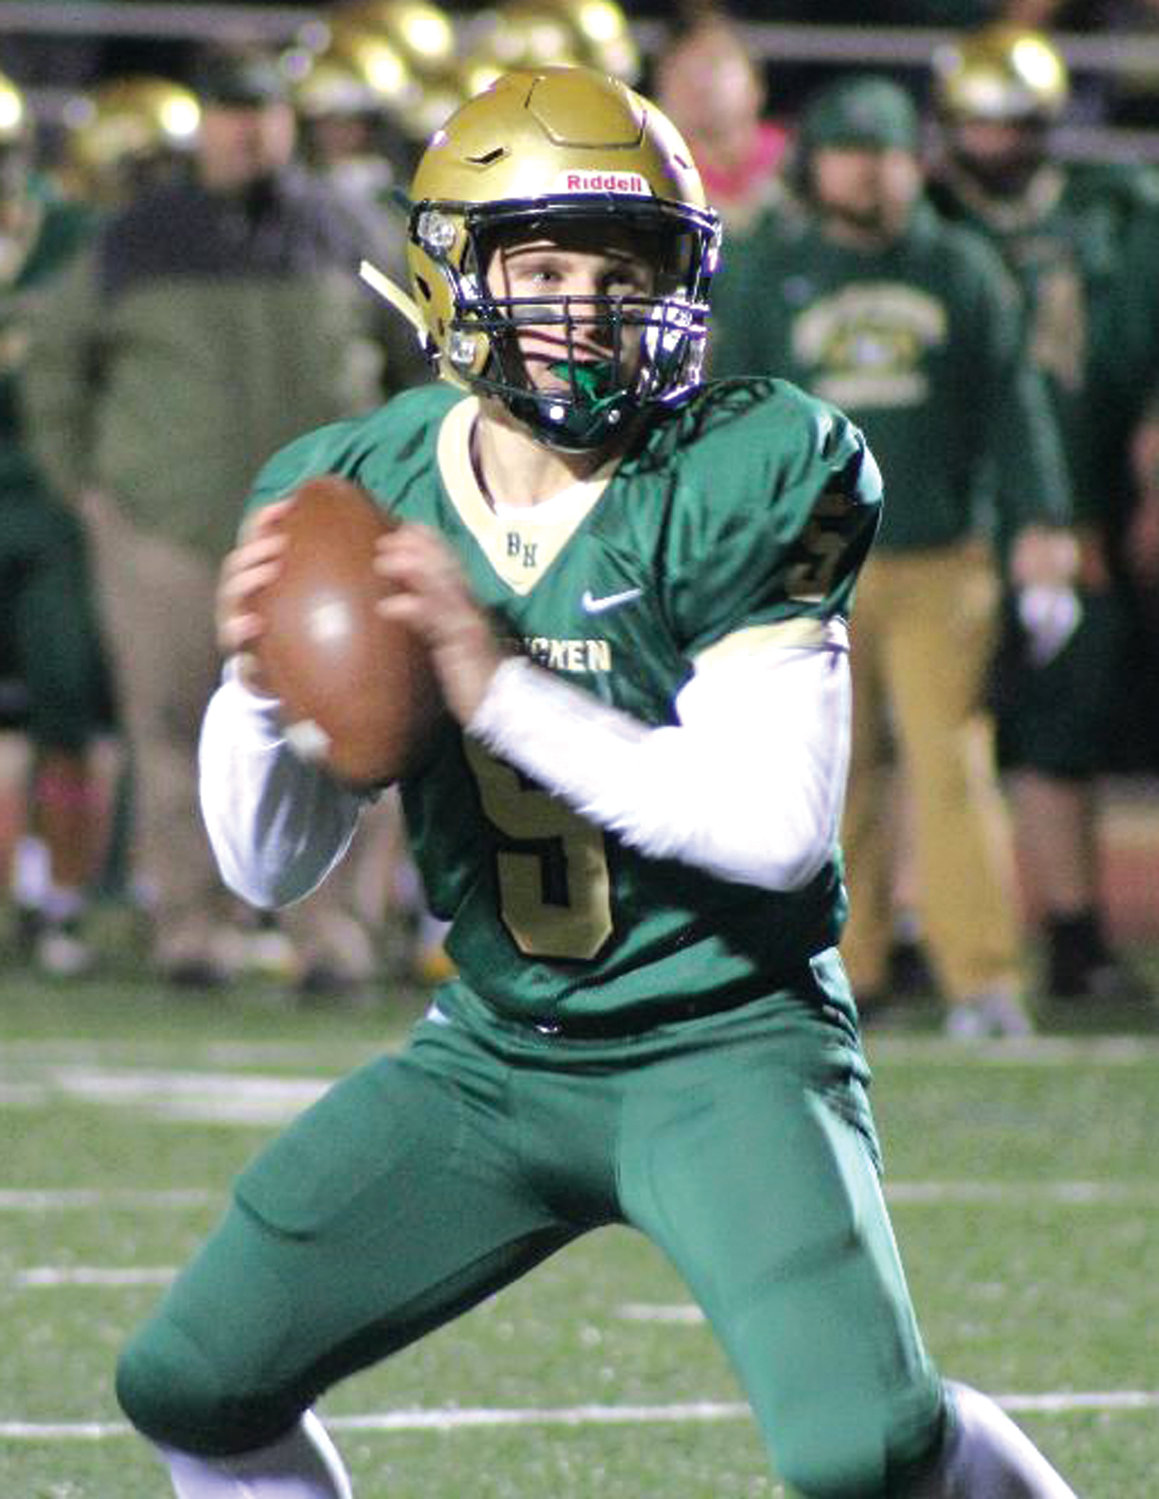 SIGNAL CALLER: Bishop Hendricken quarterback Tom Comella drops back to pass against rival La Salle last week during the team's 28-14 victory. Comella rushed and threw for touchdowns in the win.